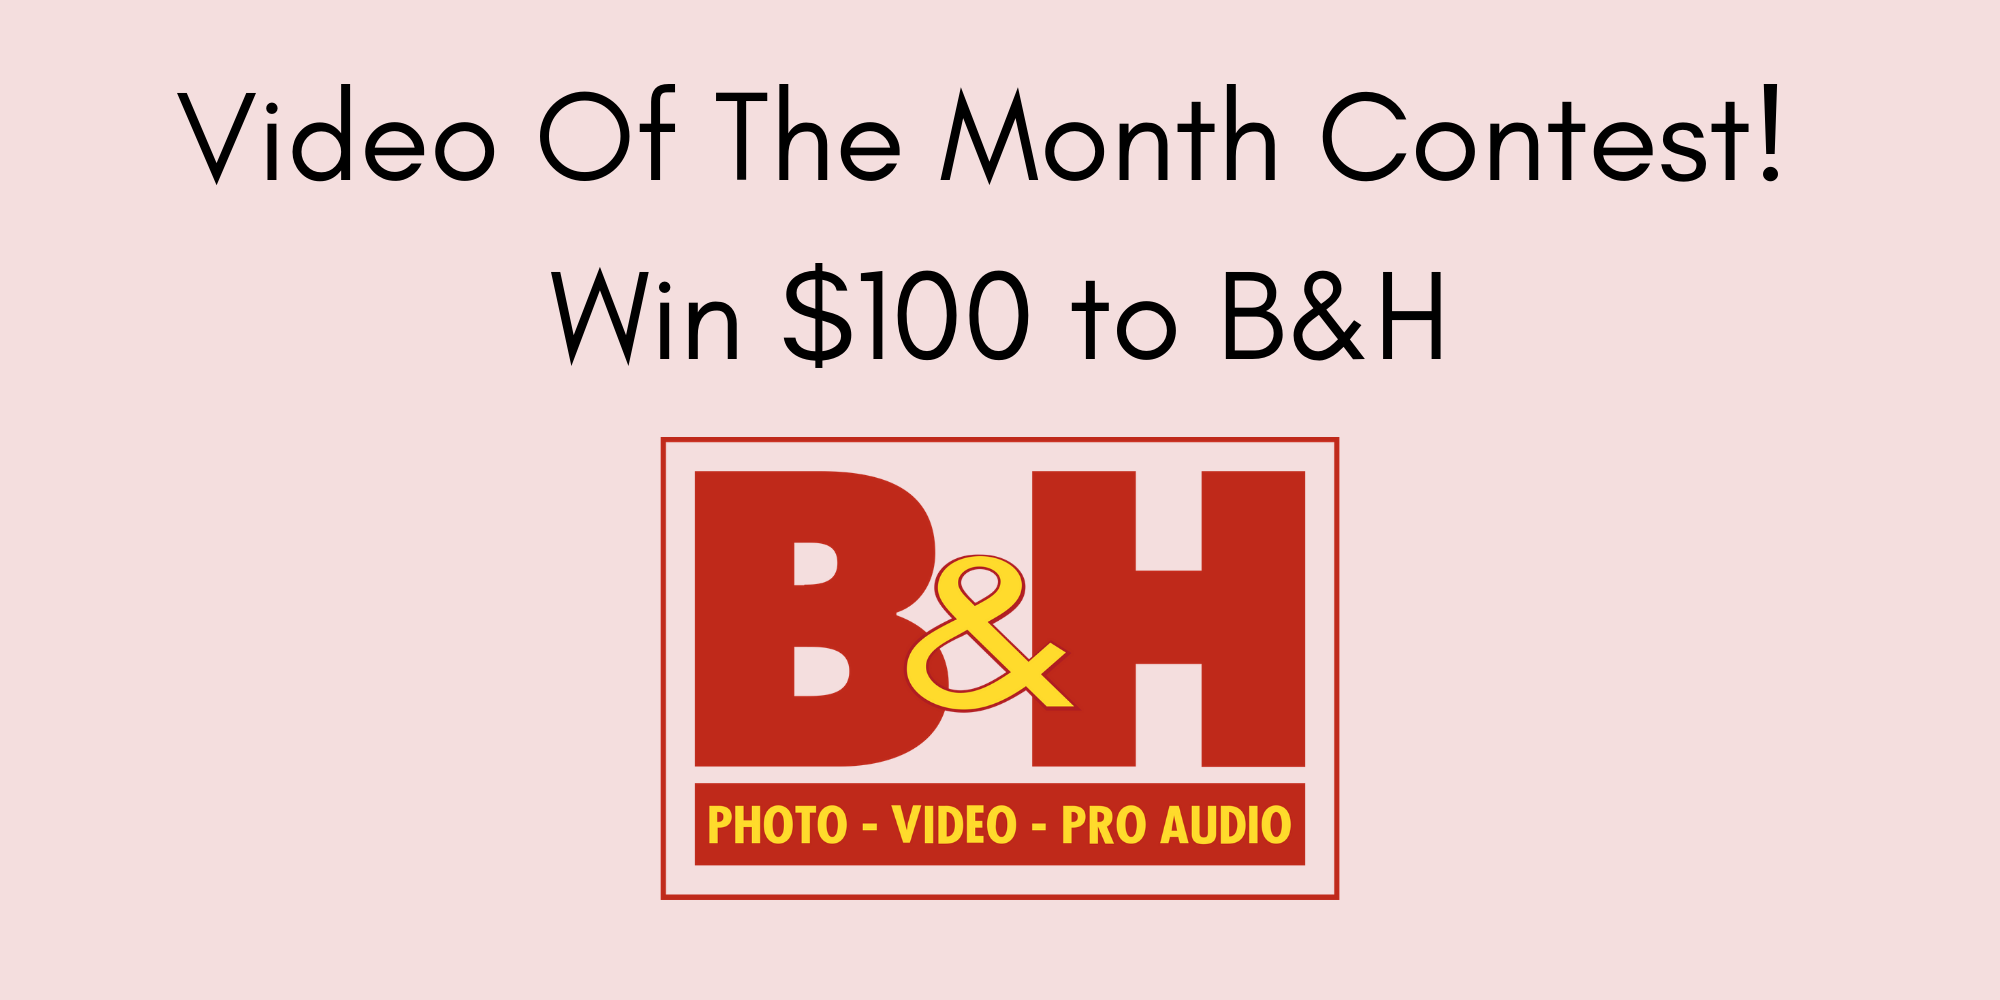 Video Of The Month Contest: Win $100 To B&H Photo